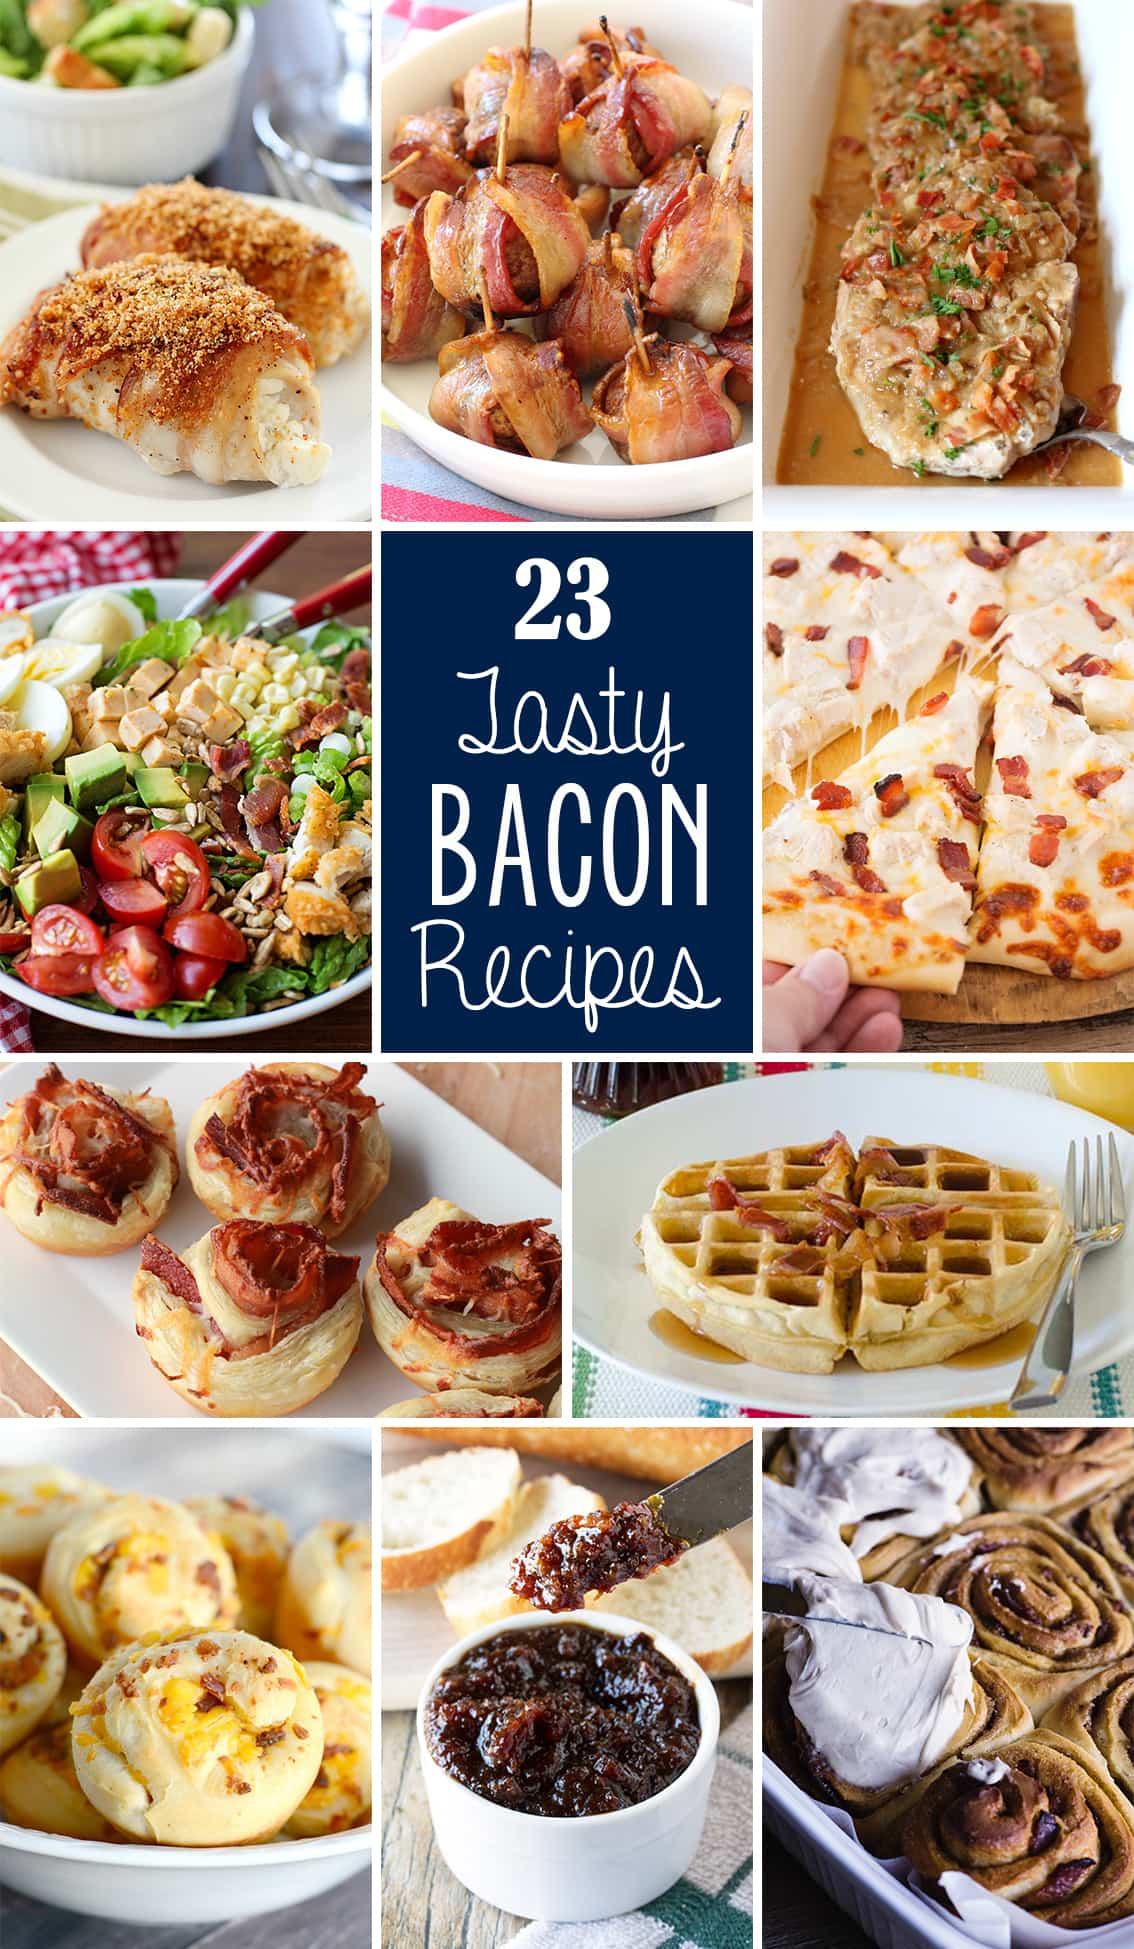 23+ Tasty Bacon Recipes for bacon lovers everywhere! From breakfast, to main dishes, to side dishes and desserts! Bacon can be a part of every meal!